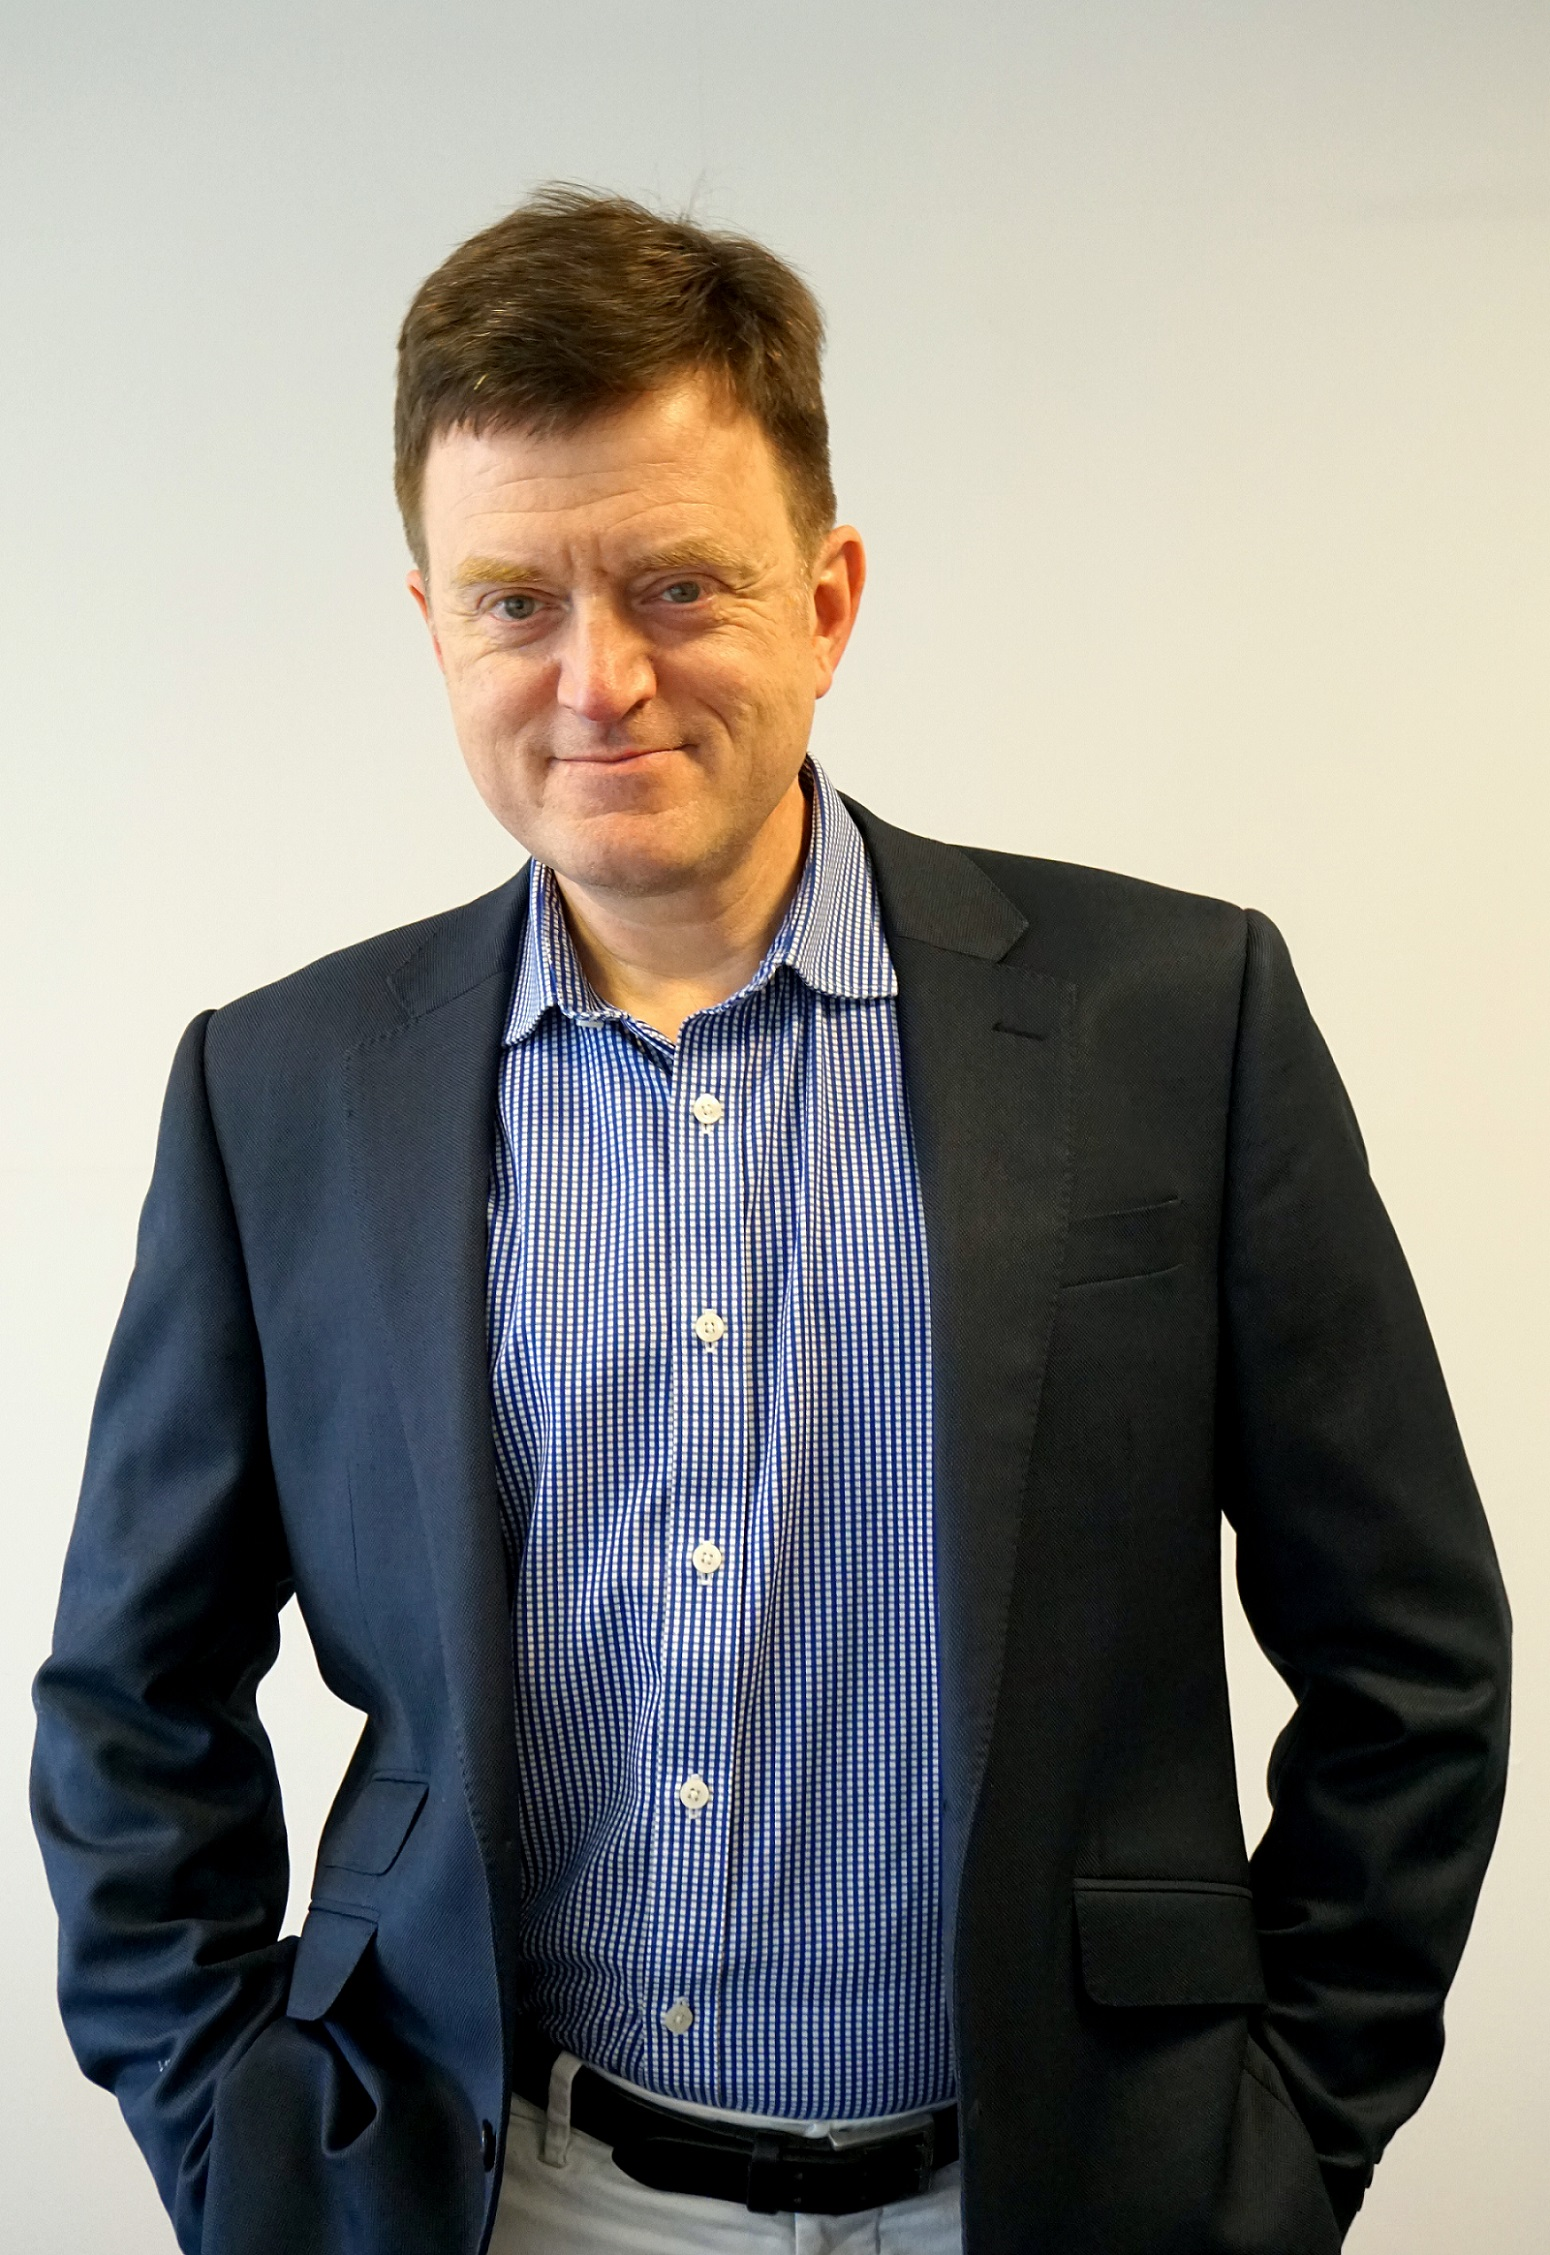 Freight firm makes strategic appointment as all-time turnover hits £50m